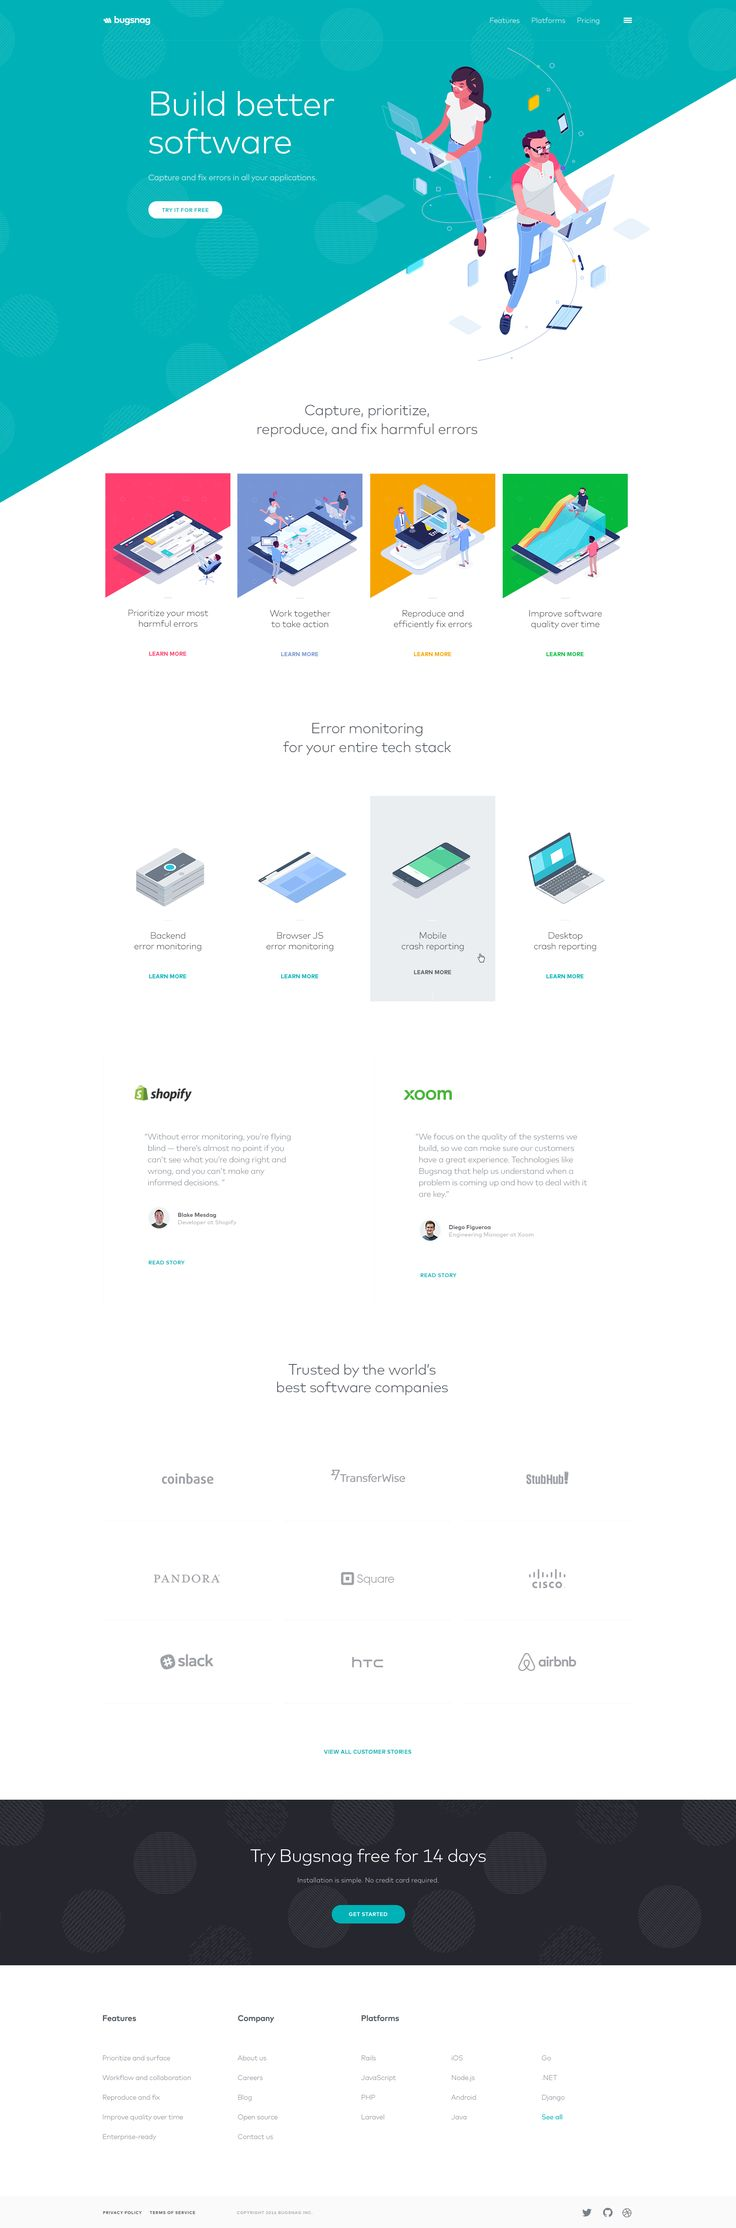 Bugsnag - Ui design concept for new website, by UENO.